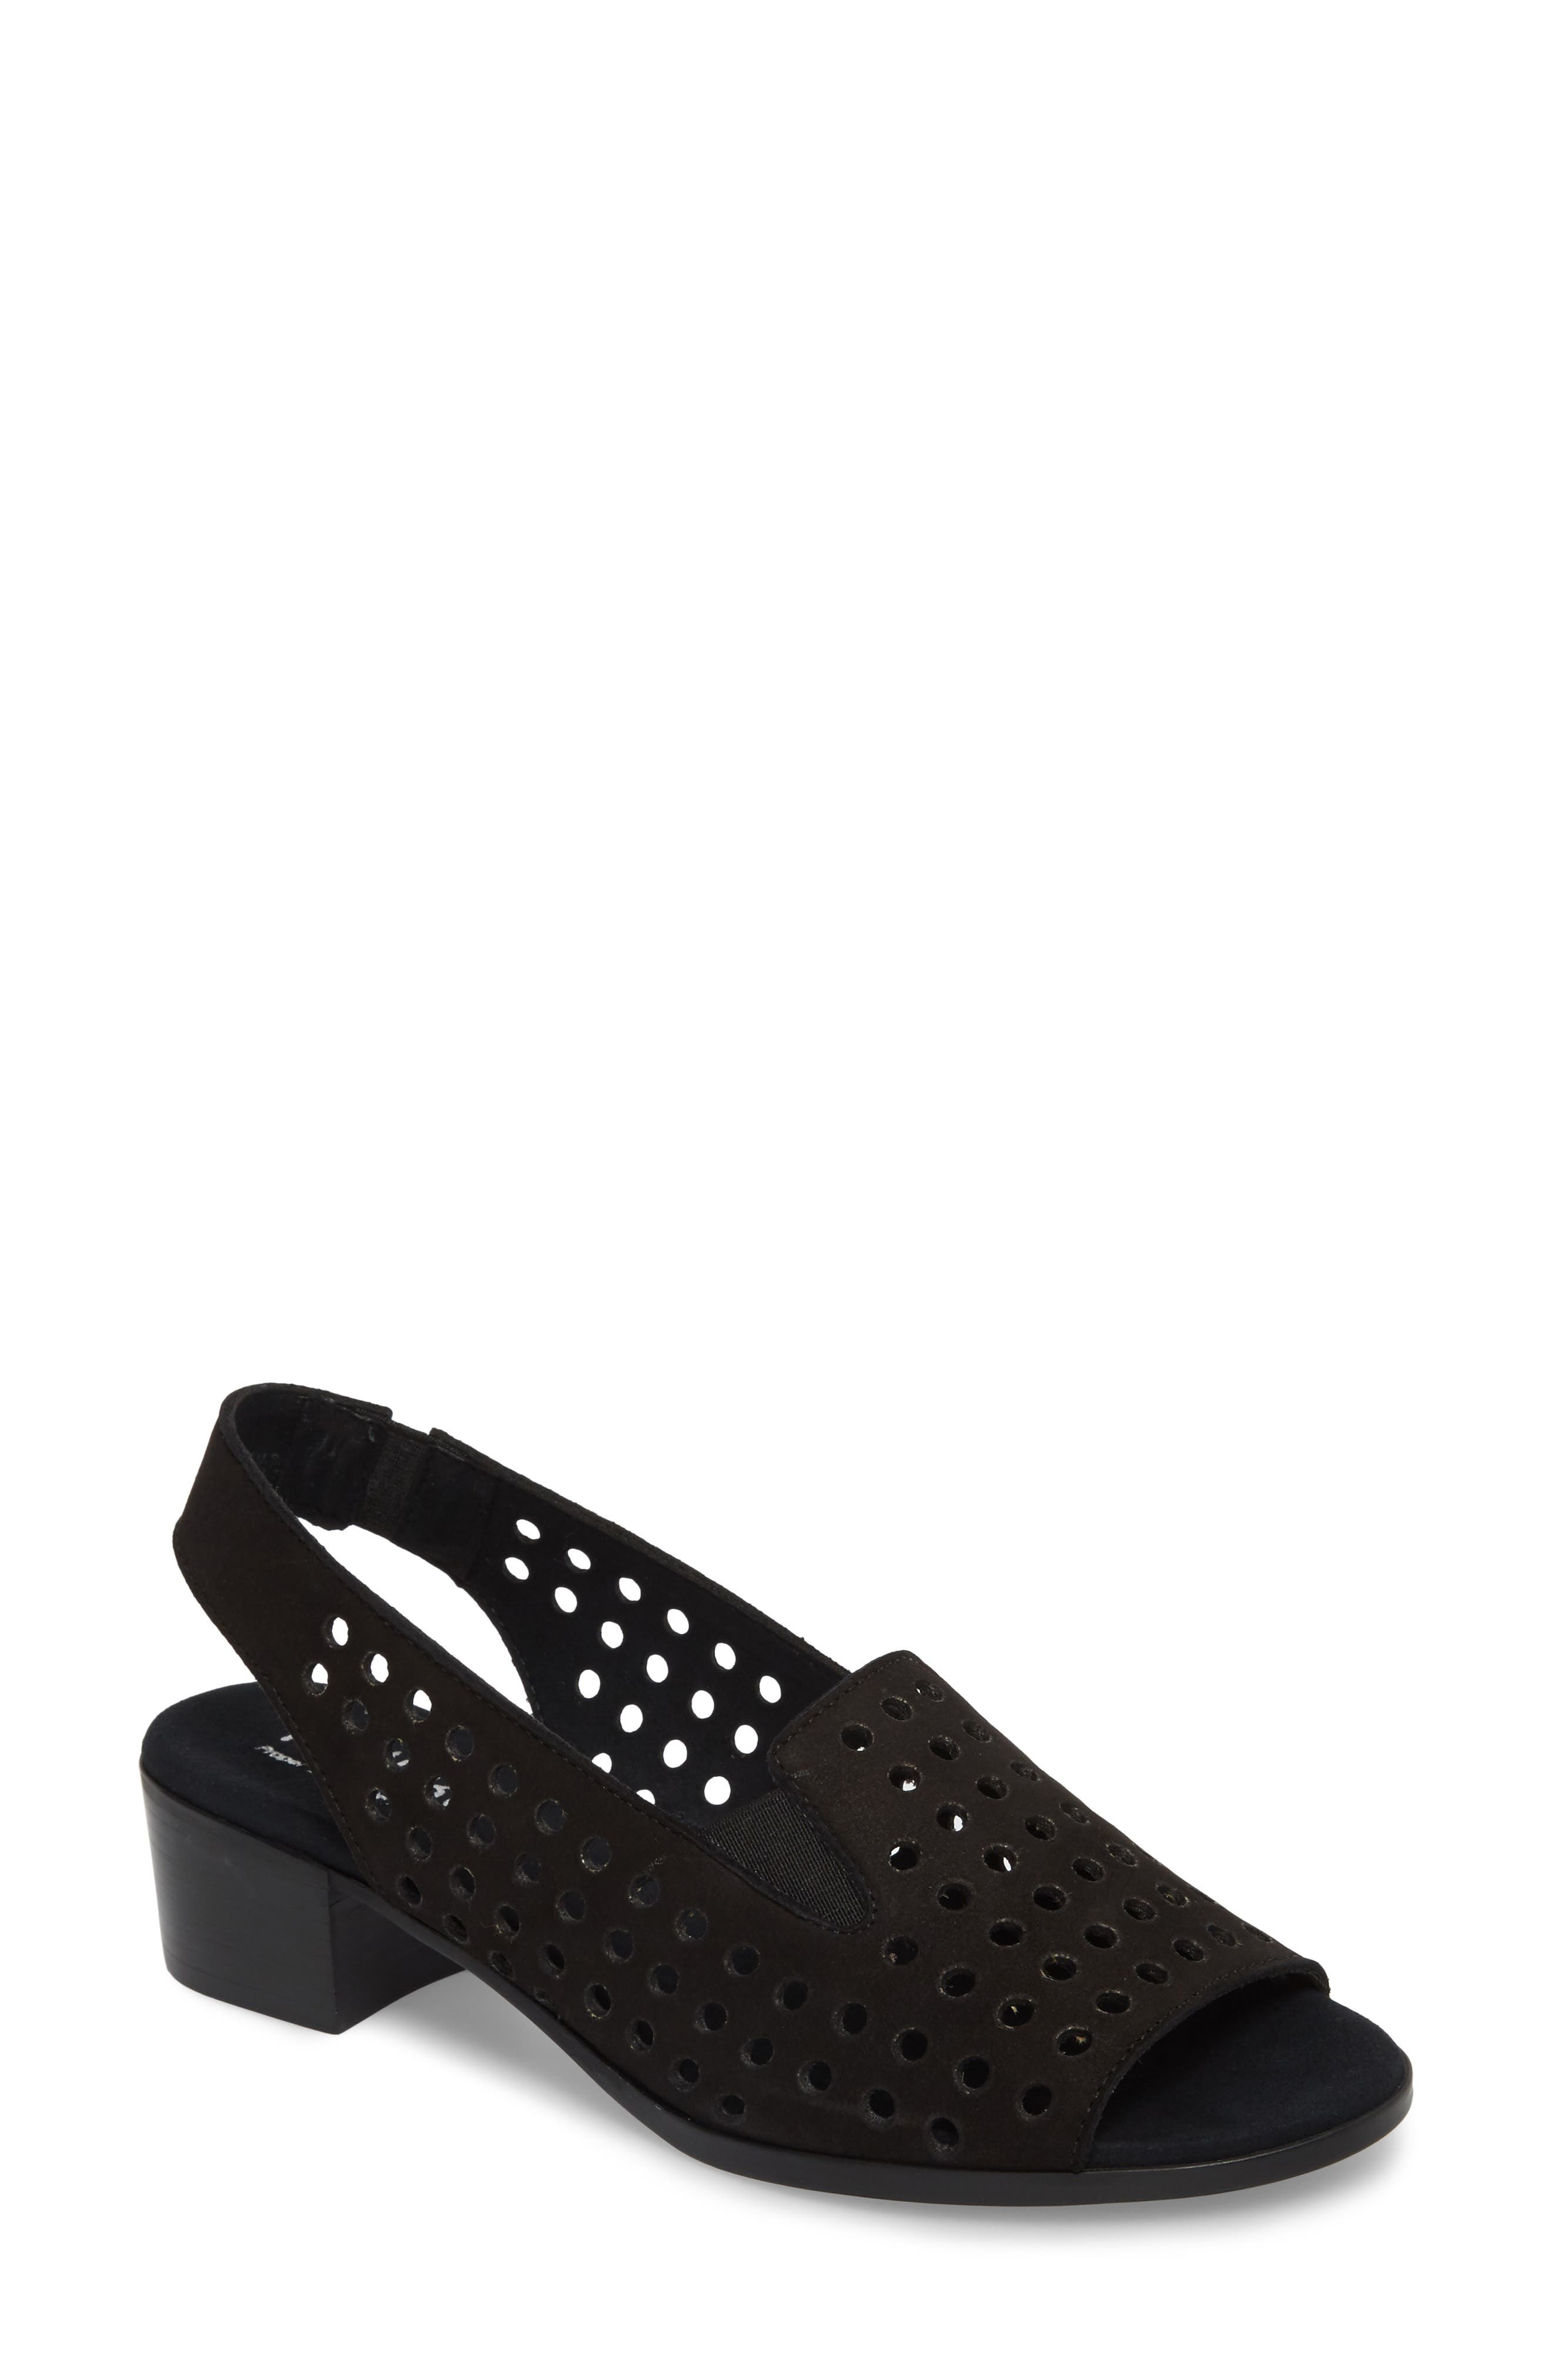 Mickee Slingback Sandal,                             Main thumbnail 1, color,                             BLACK NUBUCK LEATHER